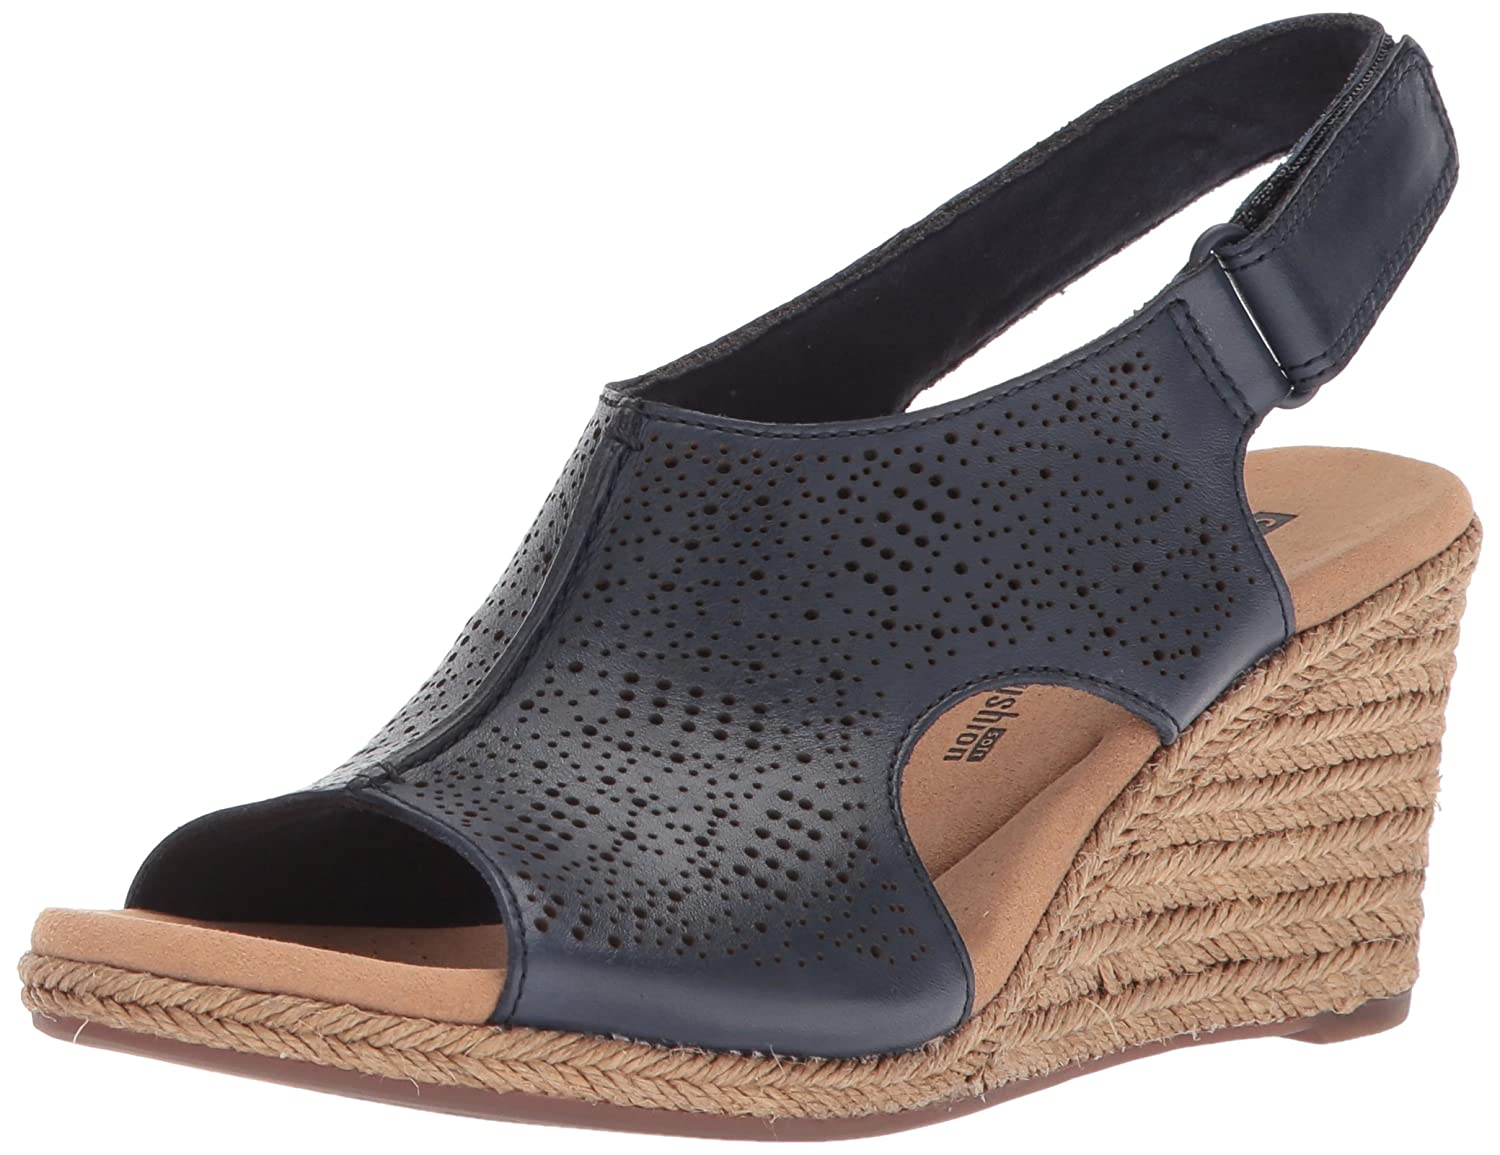 b0ef9a468c03 Clarks Womens Lafley Rosen Platform   Wedge Sandals  Amazon.ca  Shoes    Handbags